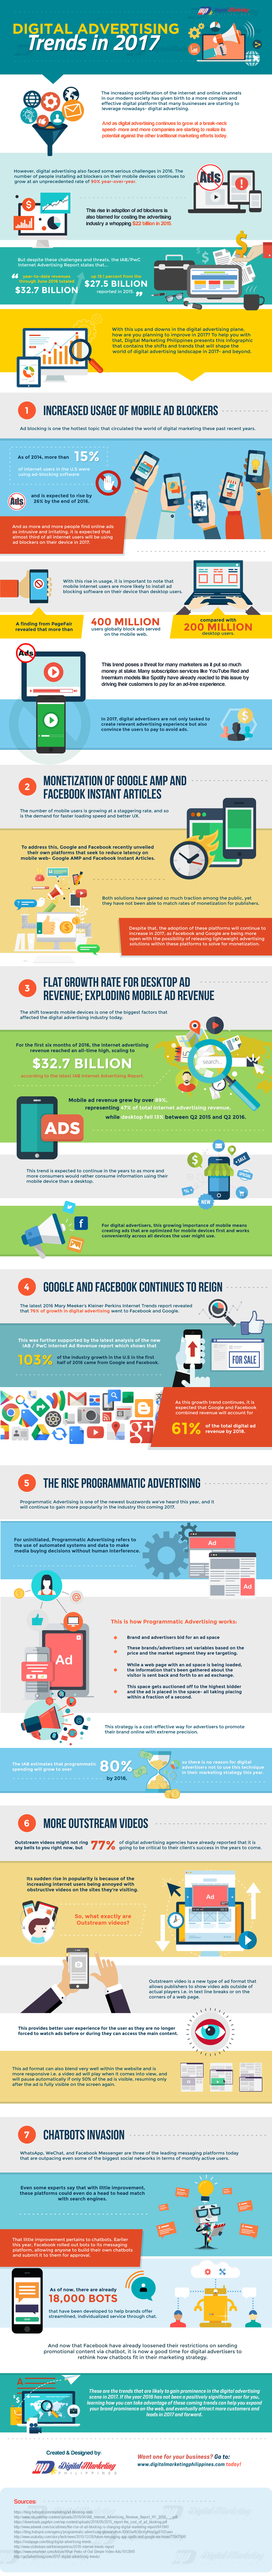 Hottest Digital Advertising Trends in 2017 [Infographic] | Social Media Today